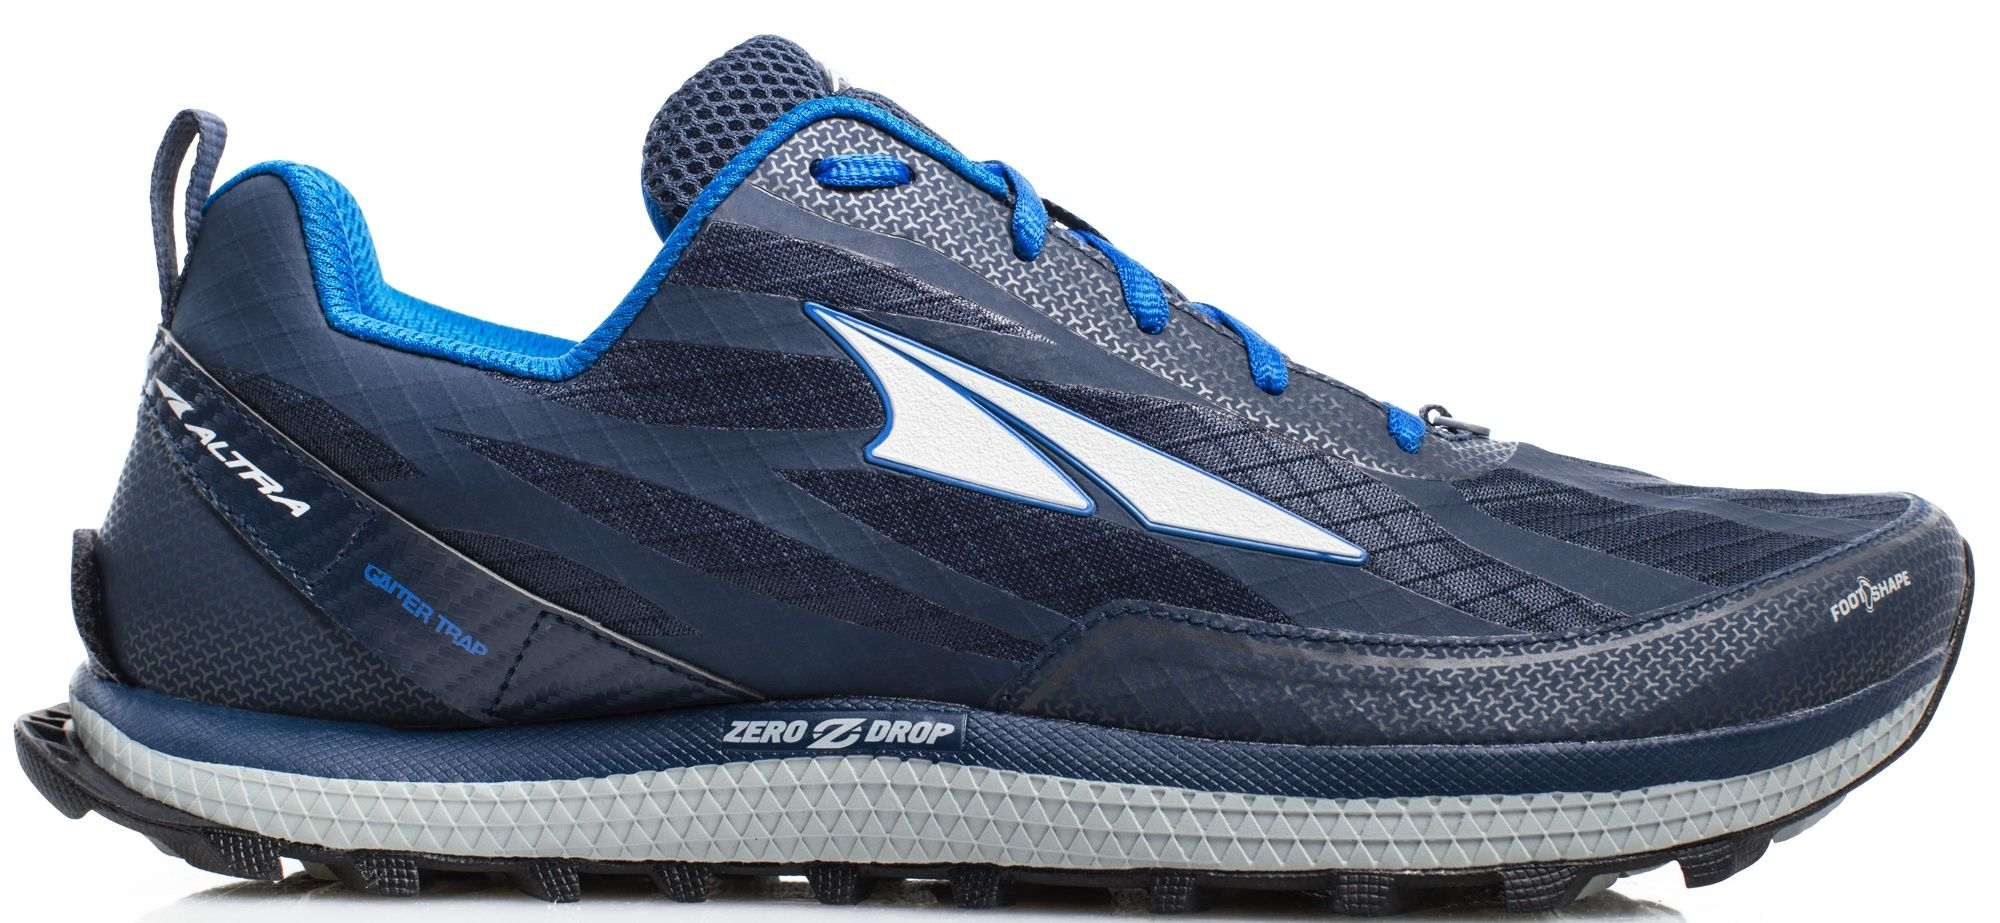 Best New Trail Shoes for Spring Summer 2018 | 跑鞋 | Shoes